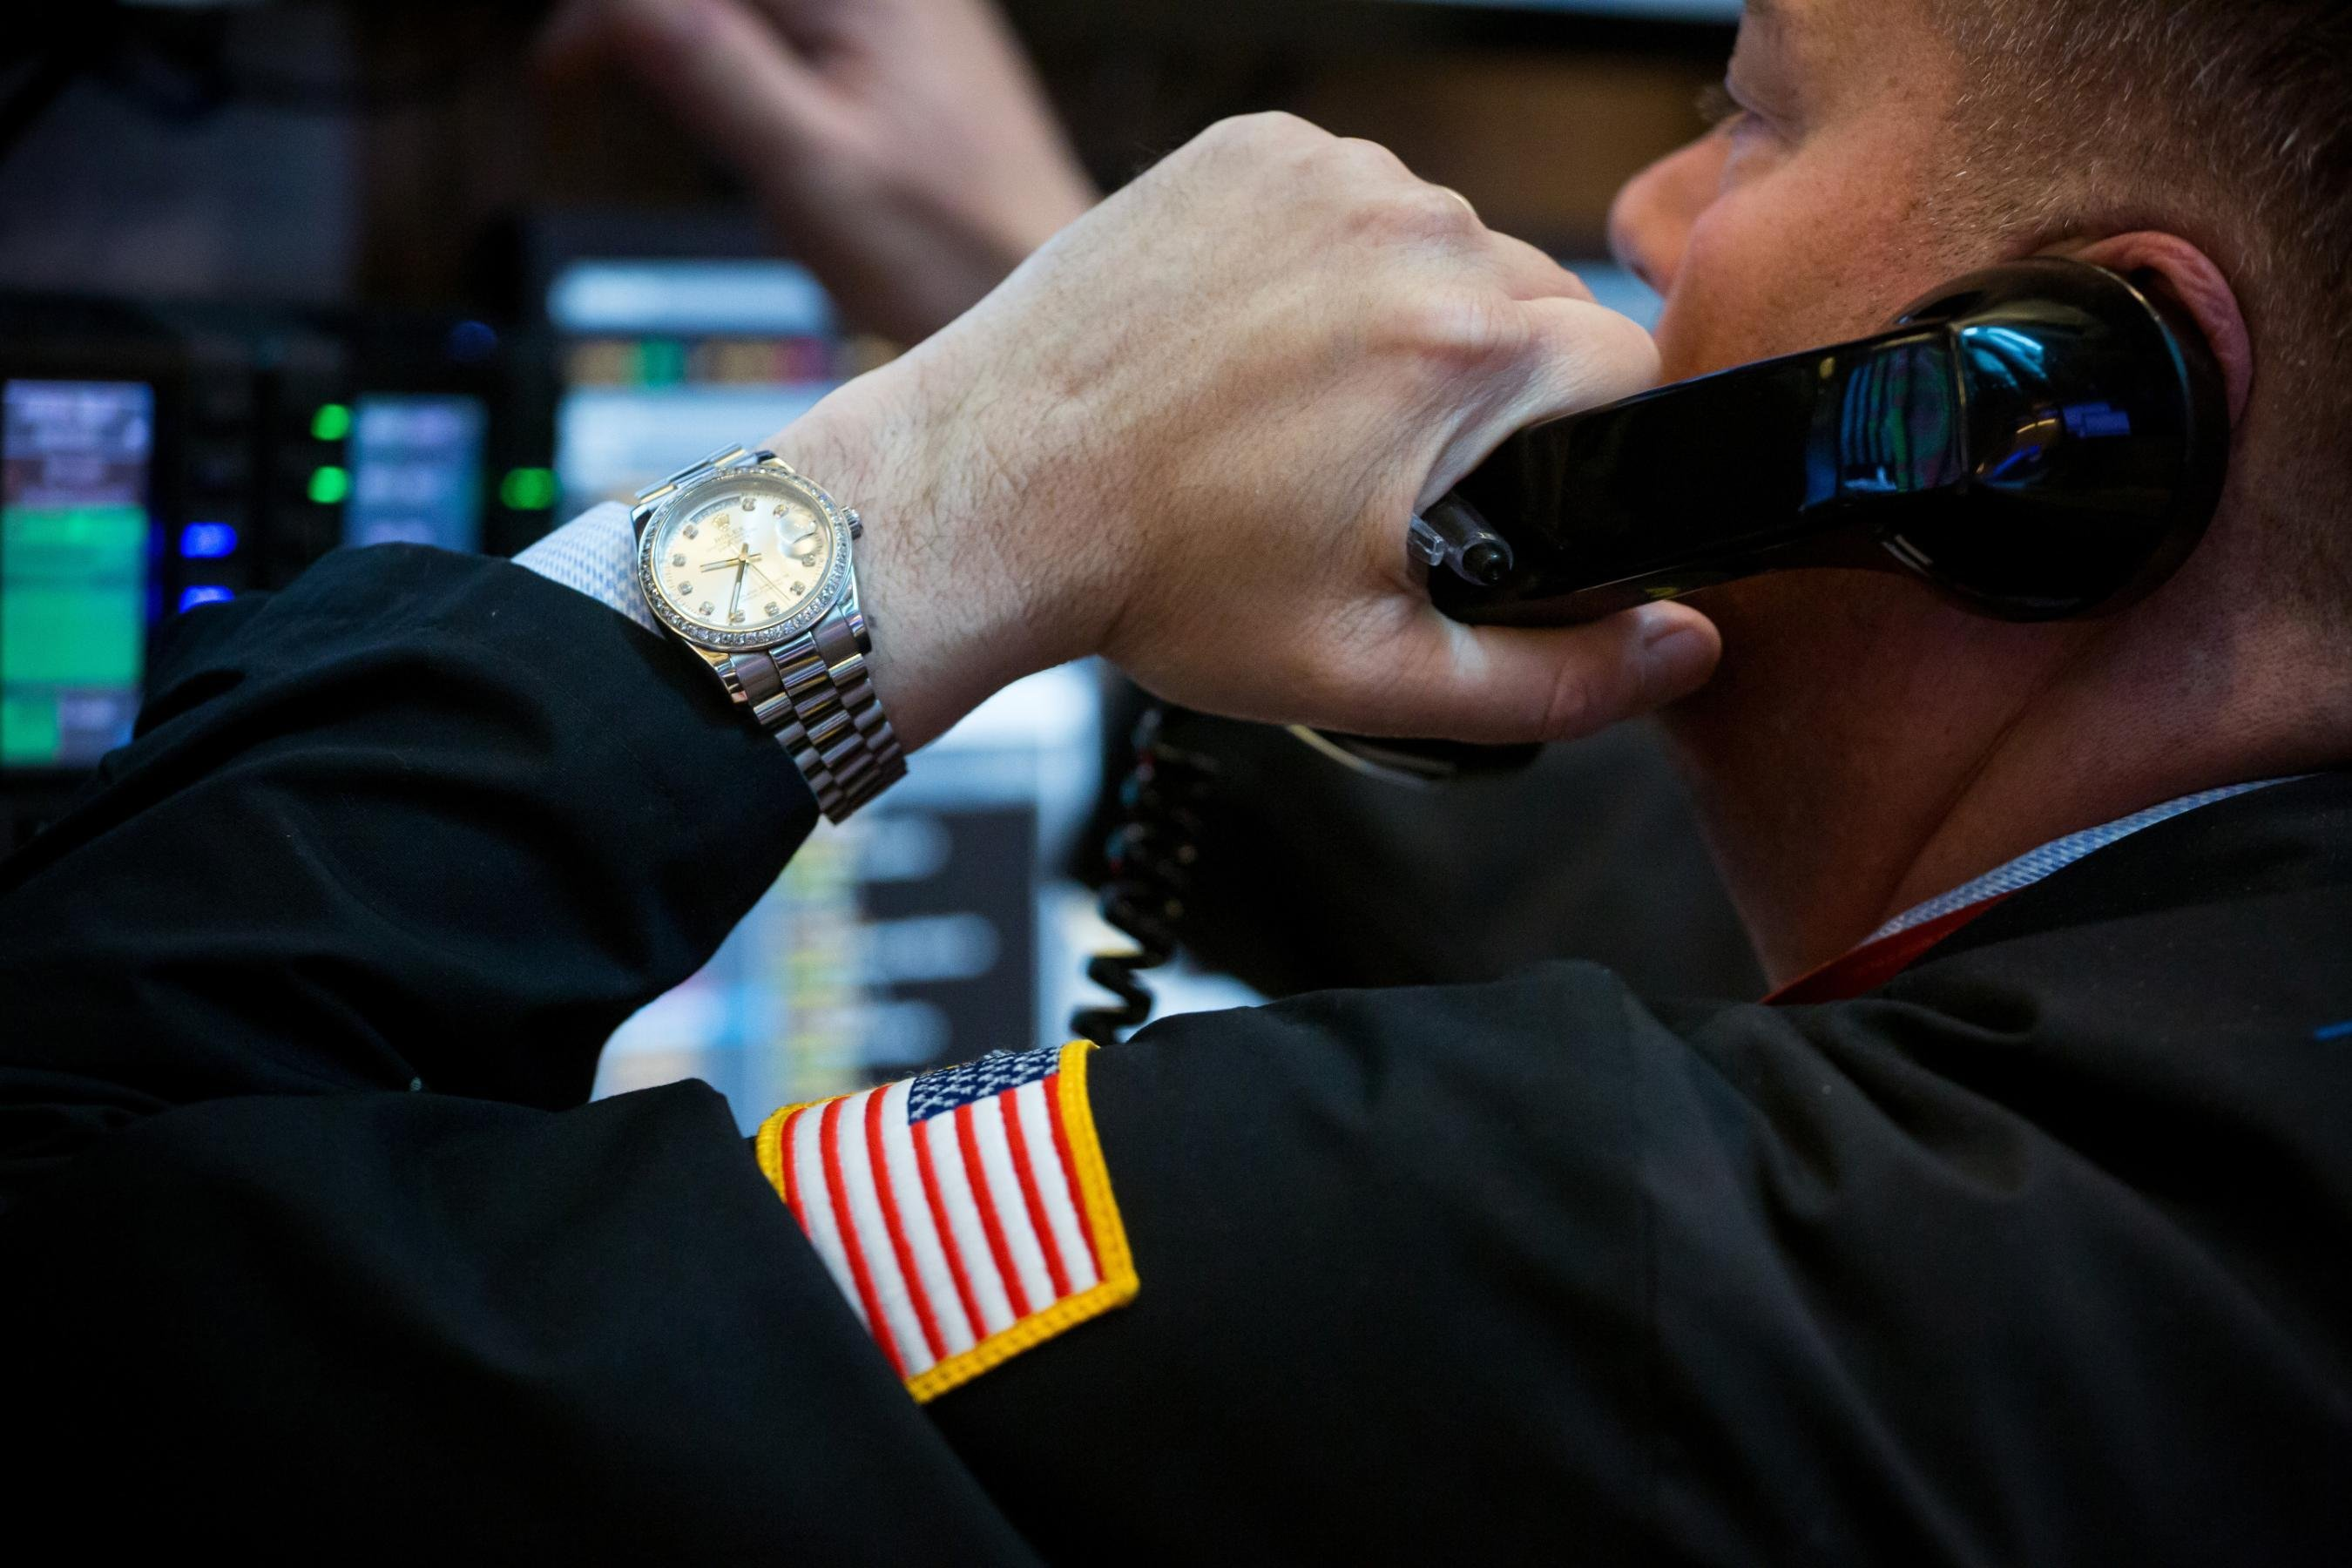 Stocks would rally if Trump quits, Wall Street firm predicts